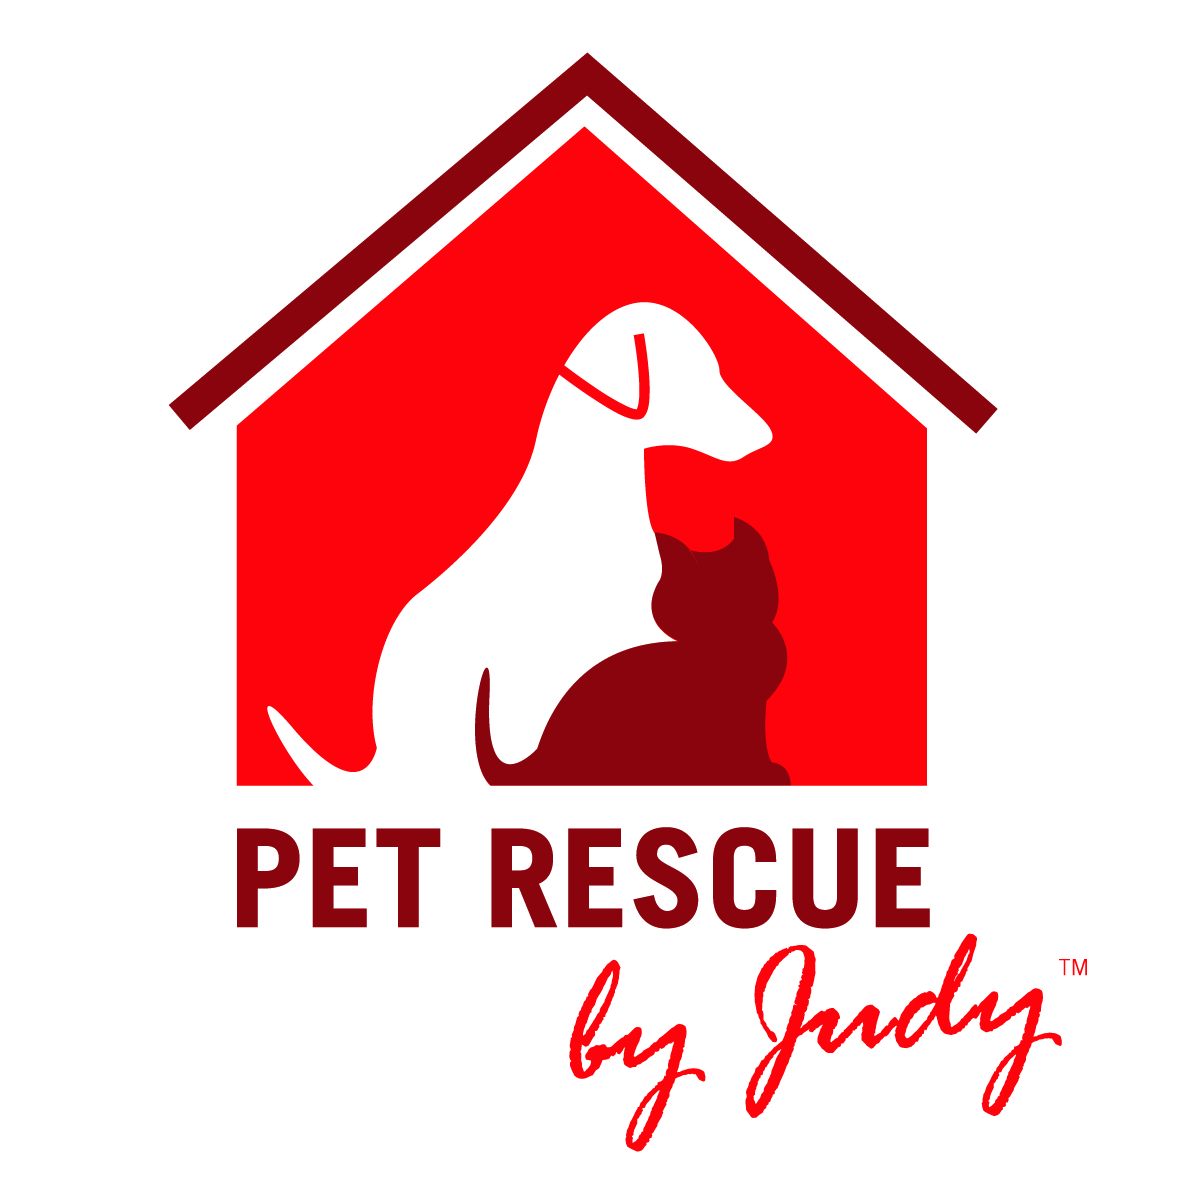 Rescue shelter clipart Clipground